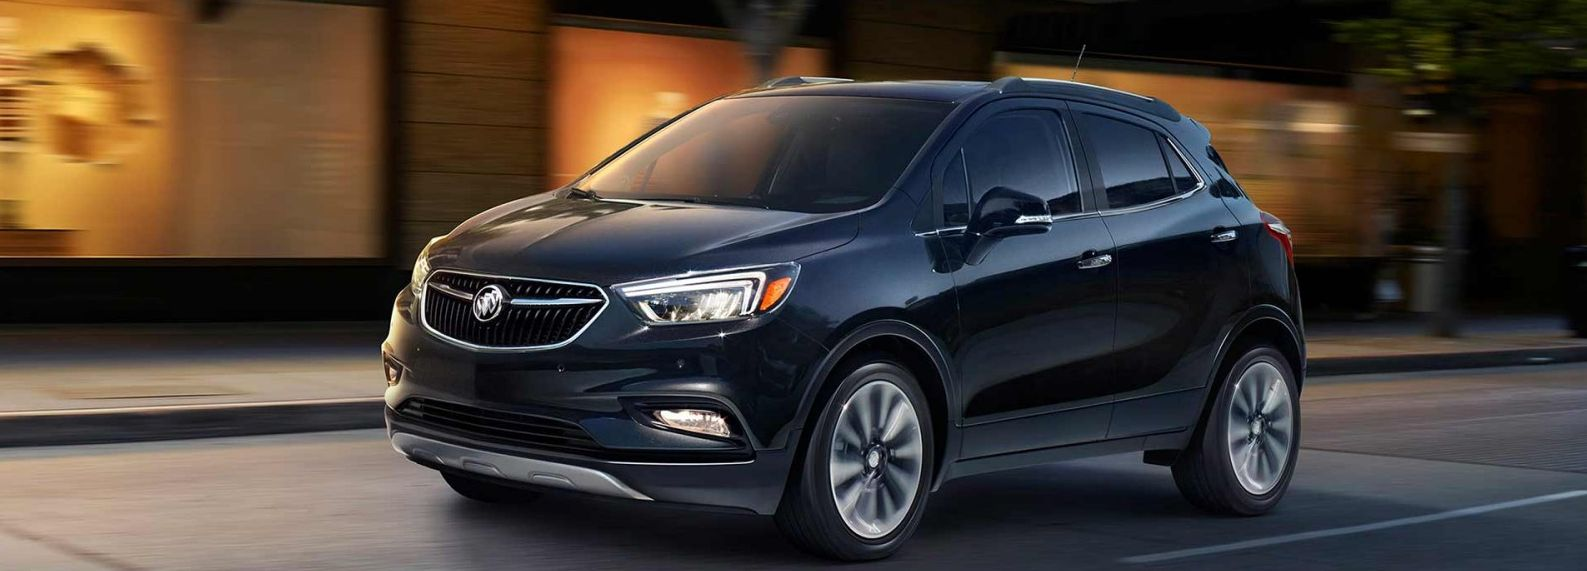 2017 buick encore financing near denver, co - medved castle rock